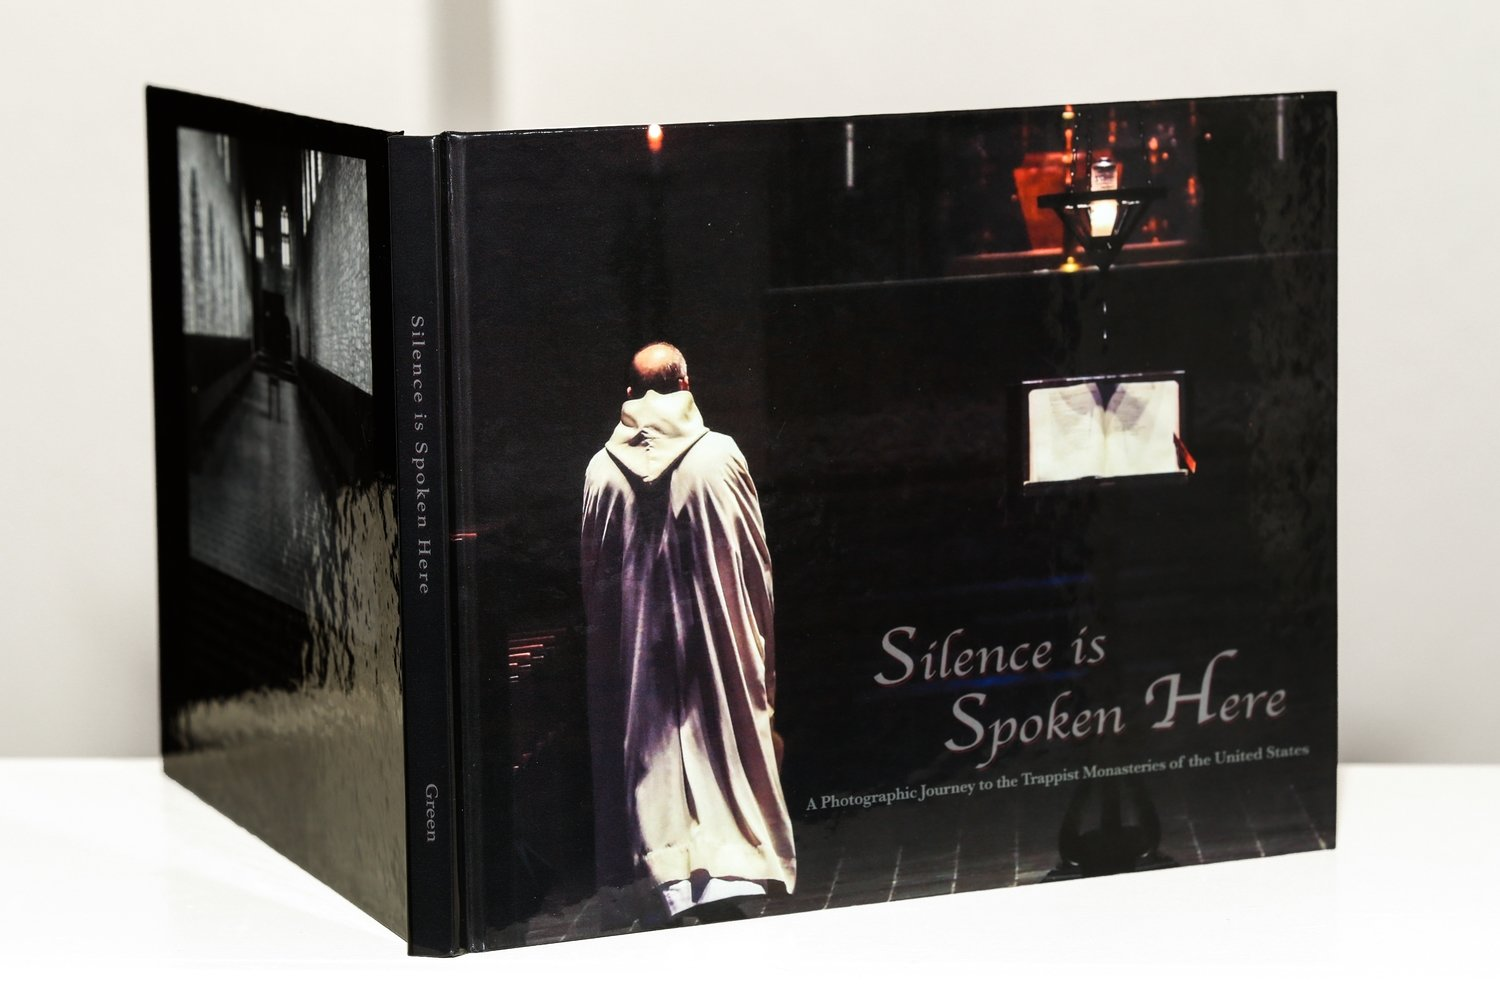 """Silence is Spoken Here - A Photographic Journey to the Trappist Monasteries of the United States"""